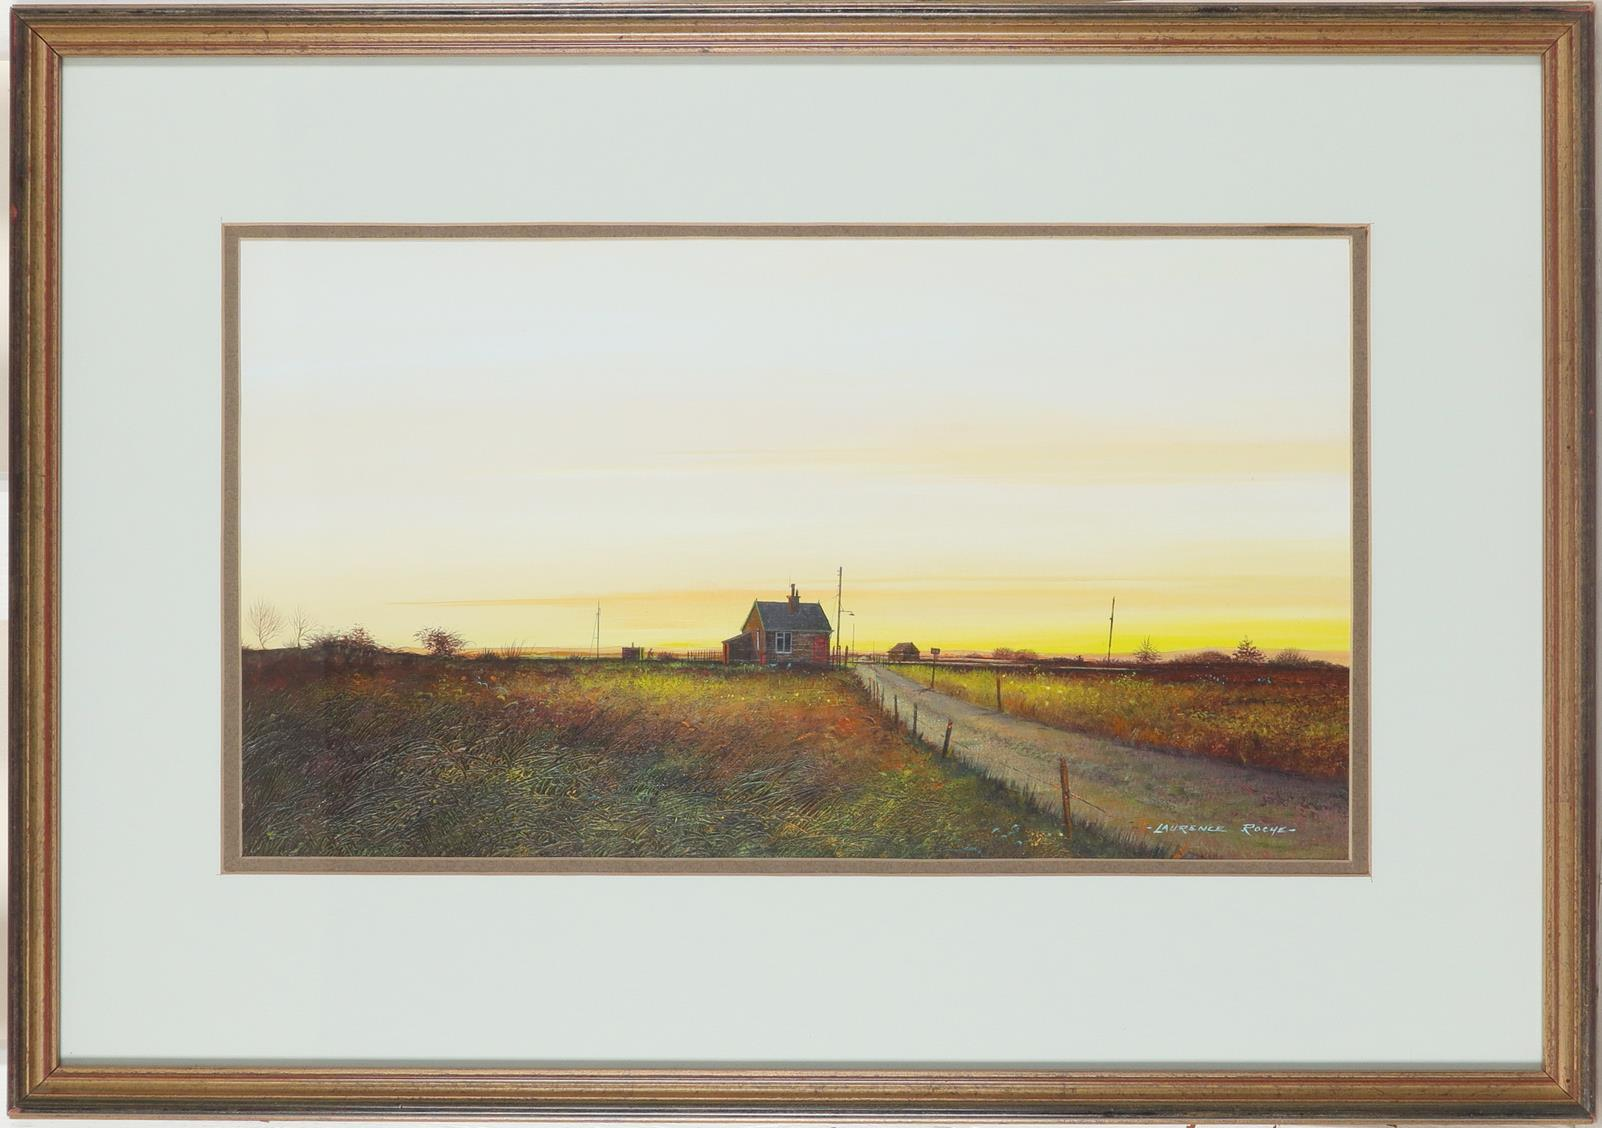 ‡Laurence Roche (Welsh b.1944) Country crossing Signed -LAURENCE ROCHE- (lower right) Acrylic on - Image 2 of 3